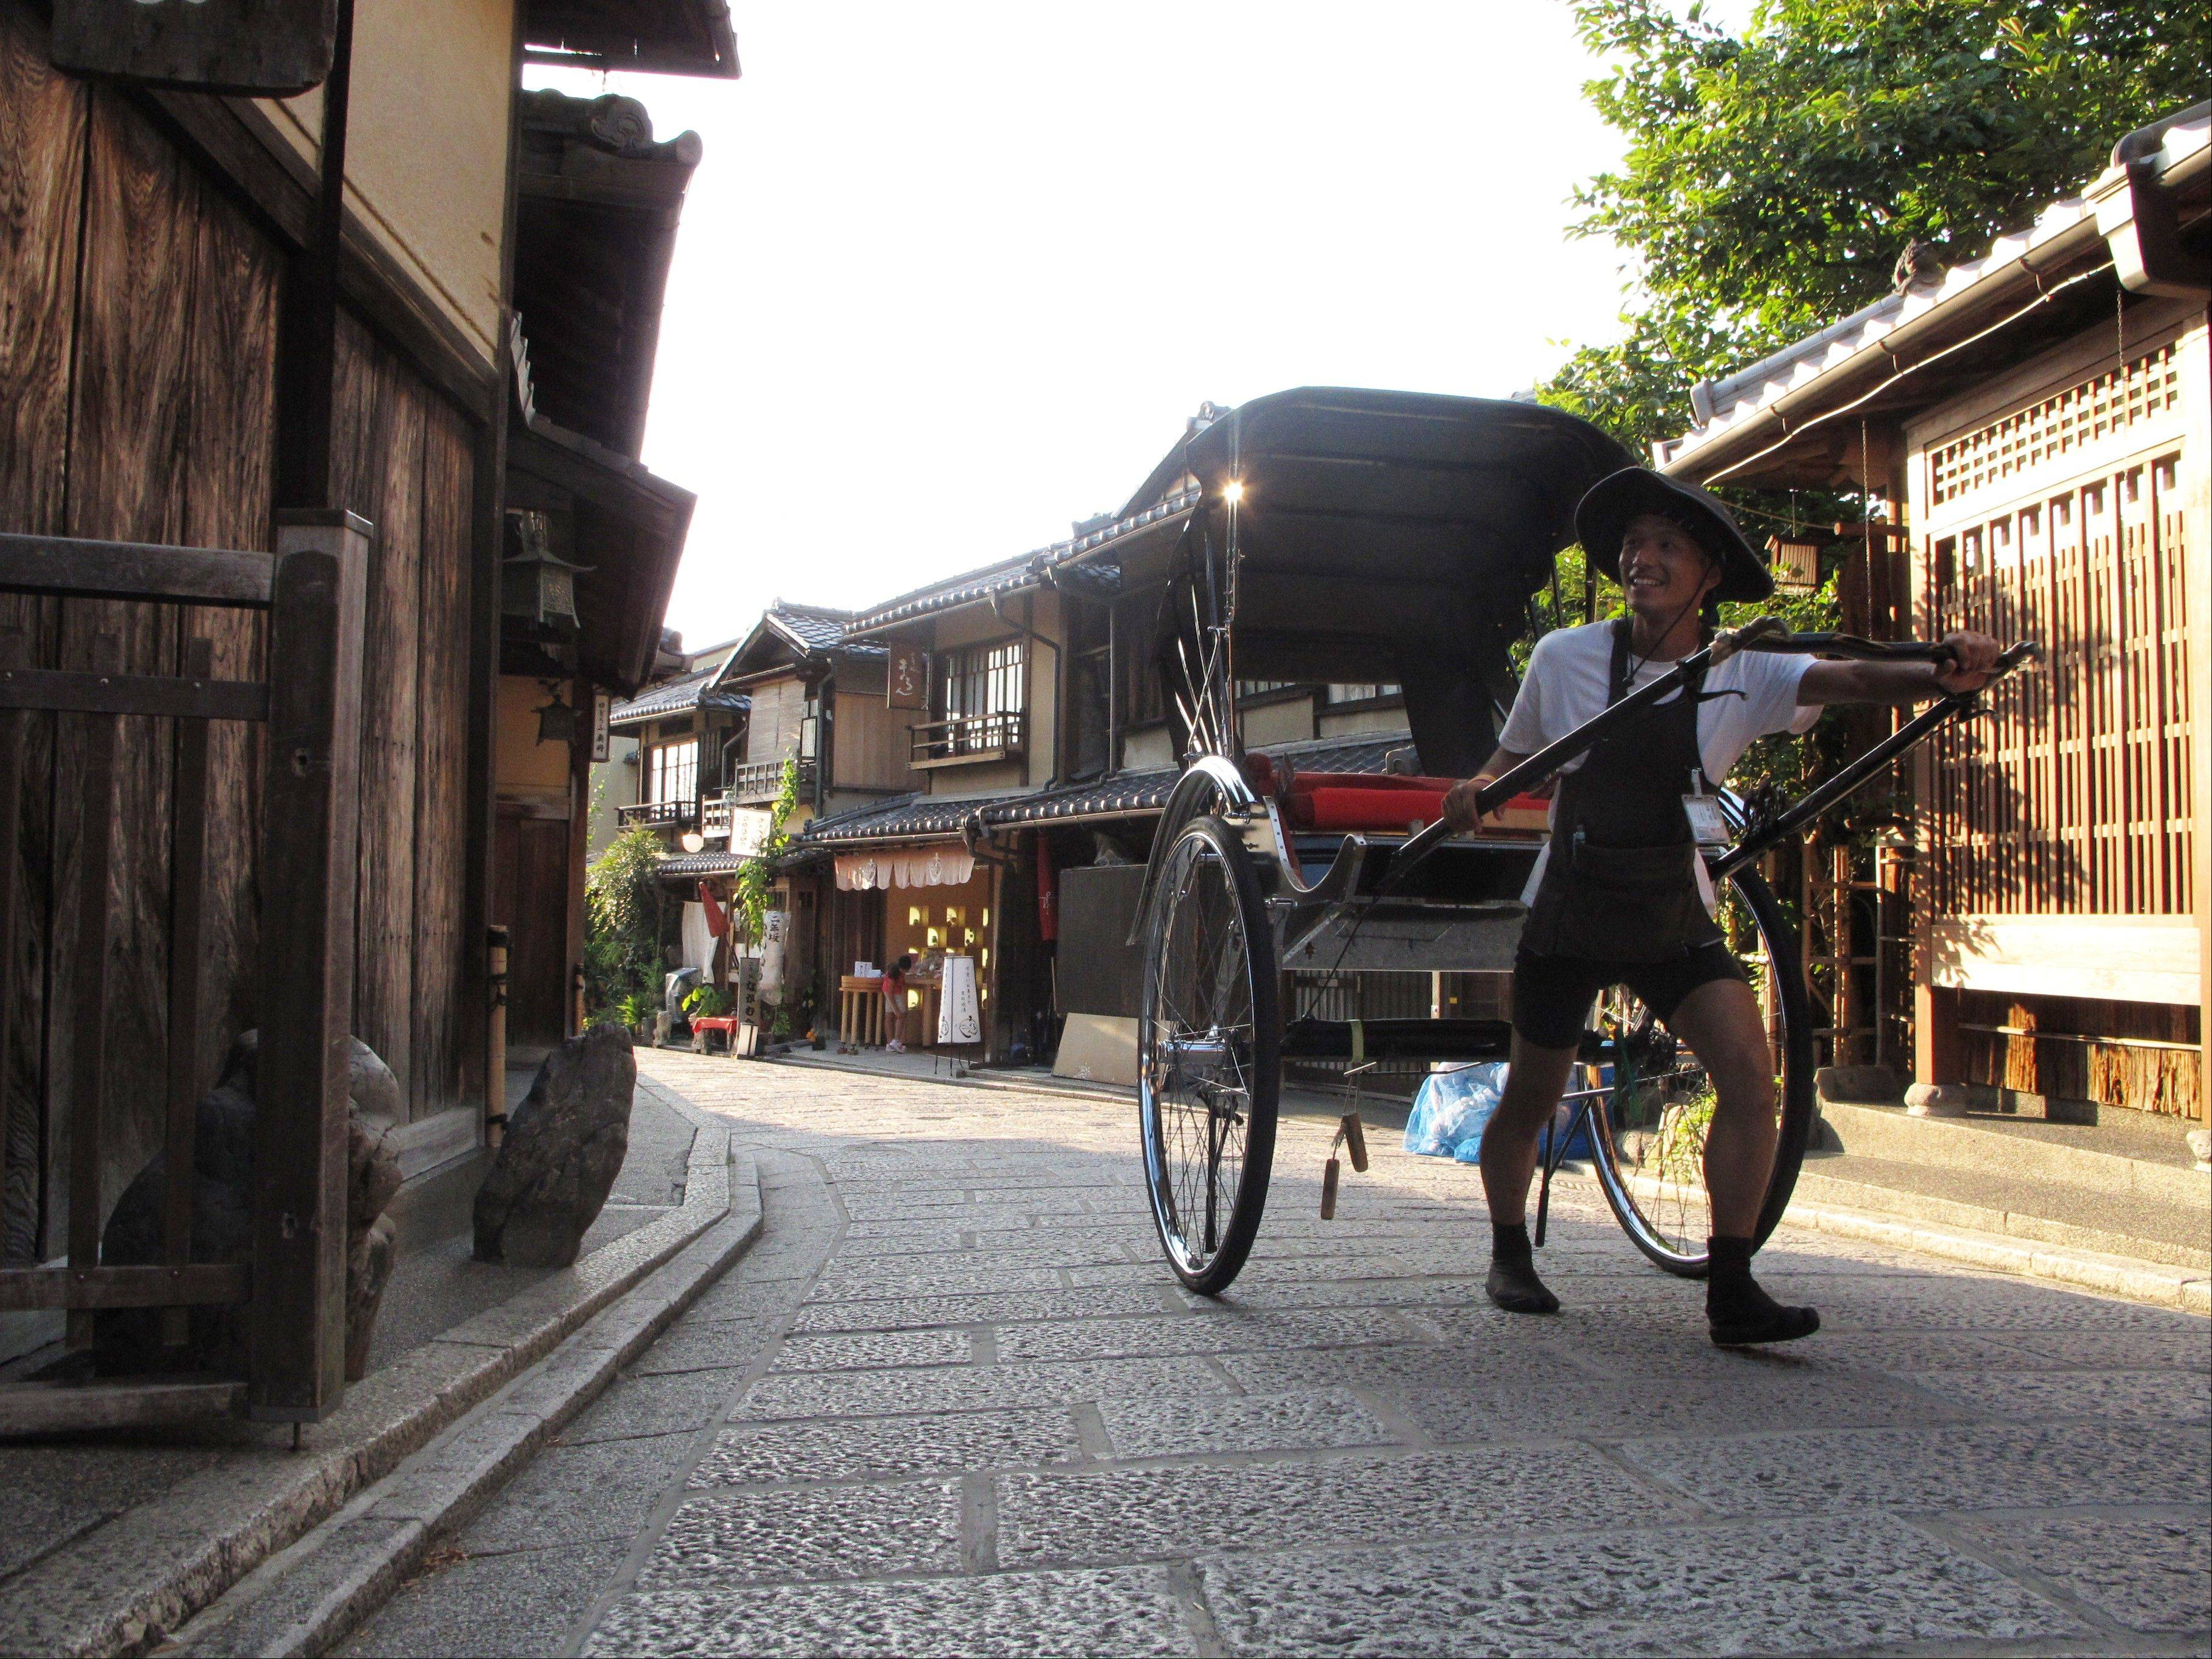 A man pulls a rickshaw-for-hire down a narrow street in Kyoto, Japan, near the city's Kiyomizu Temple. The temple and surrounding neighborhood are a great place to explore for families with children.